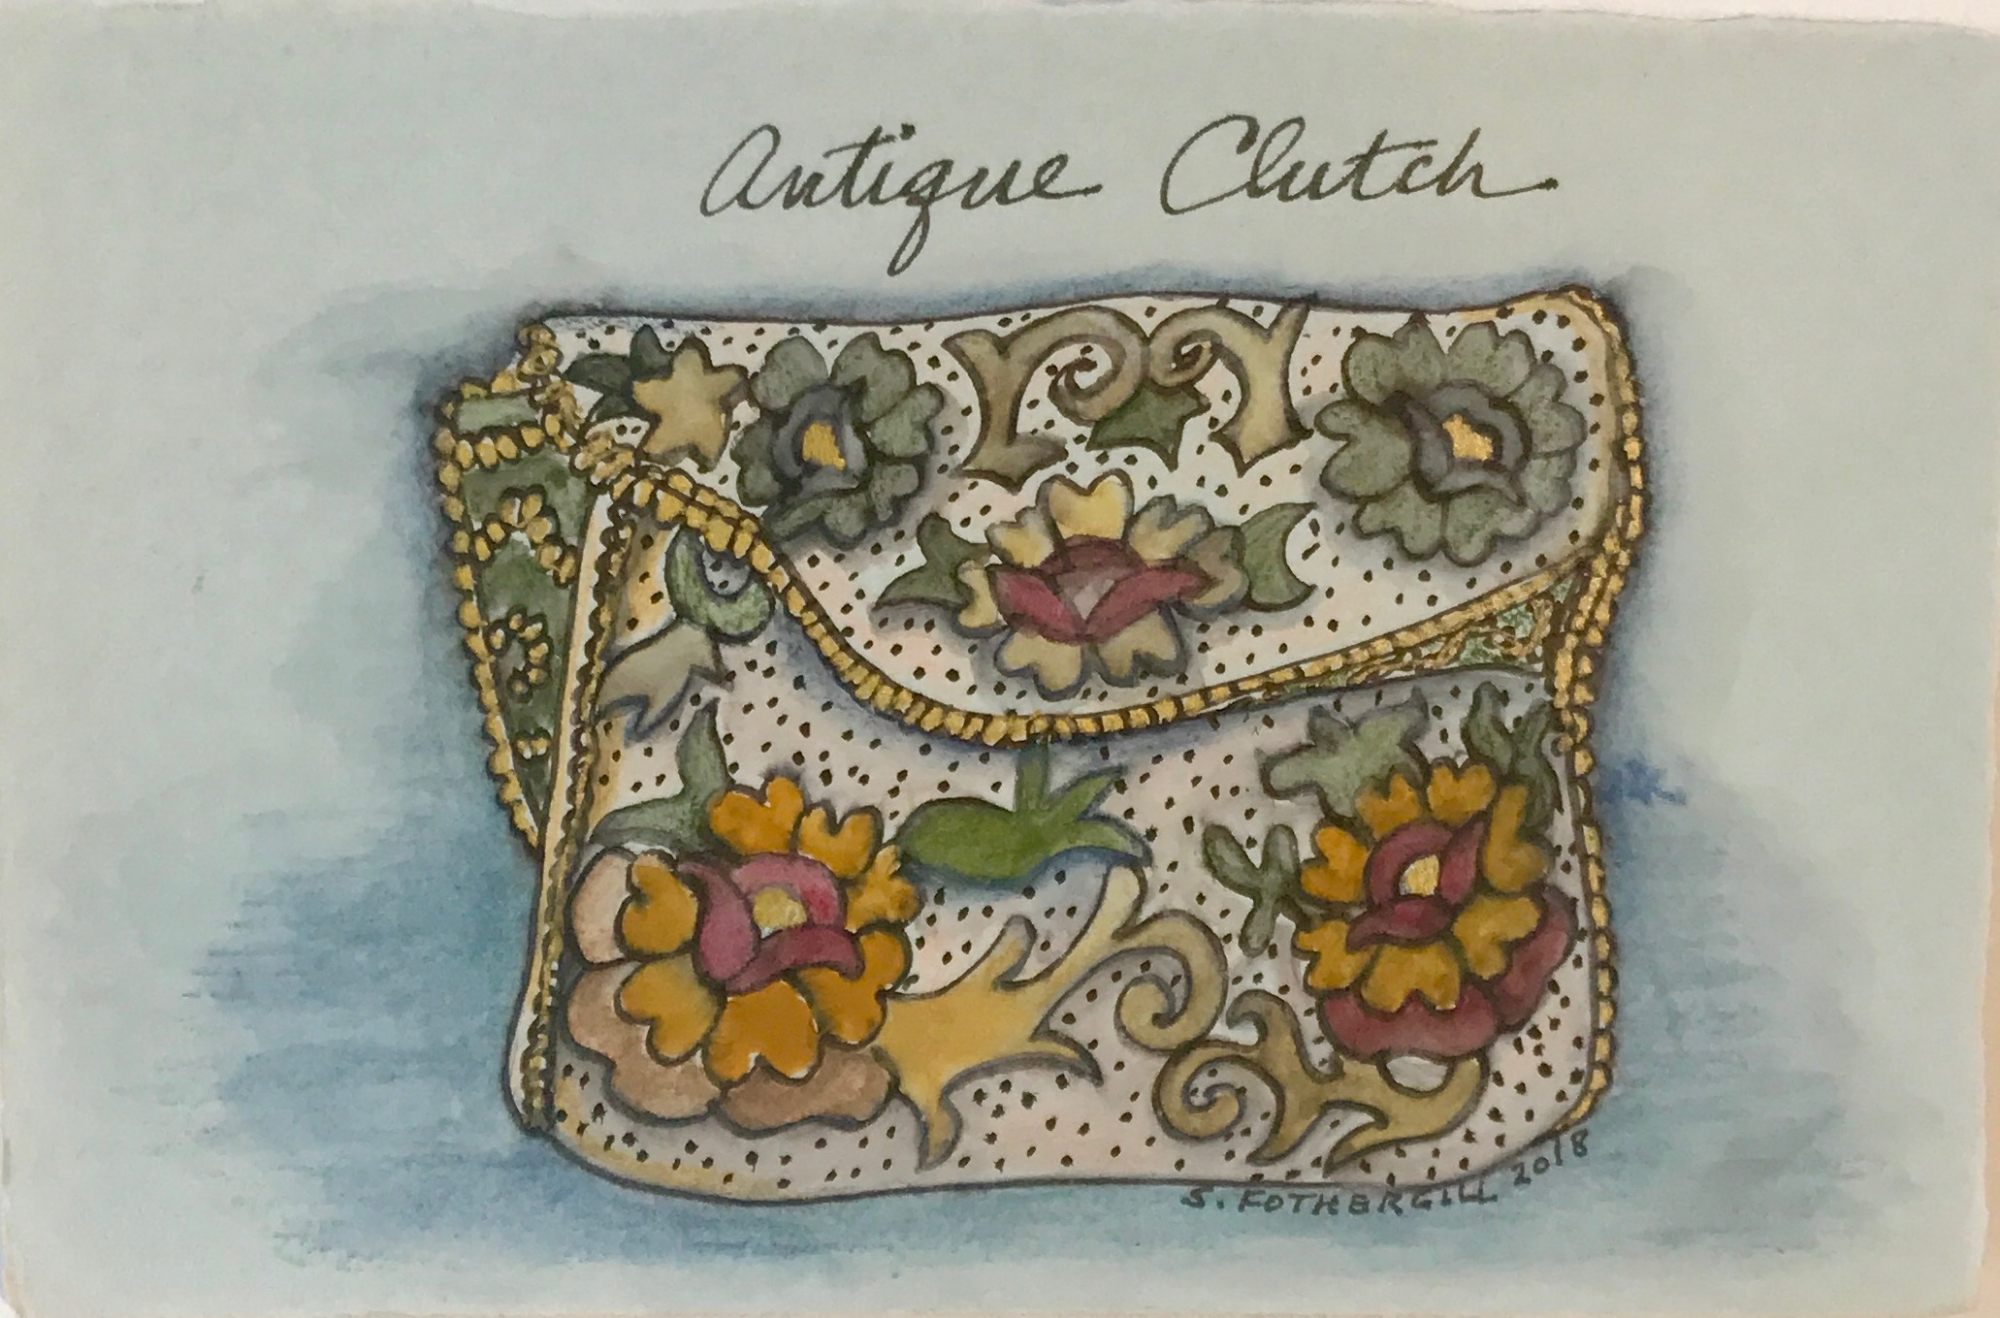 Antique Clutch by Susan Fothergill